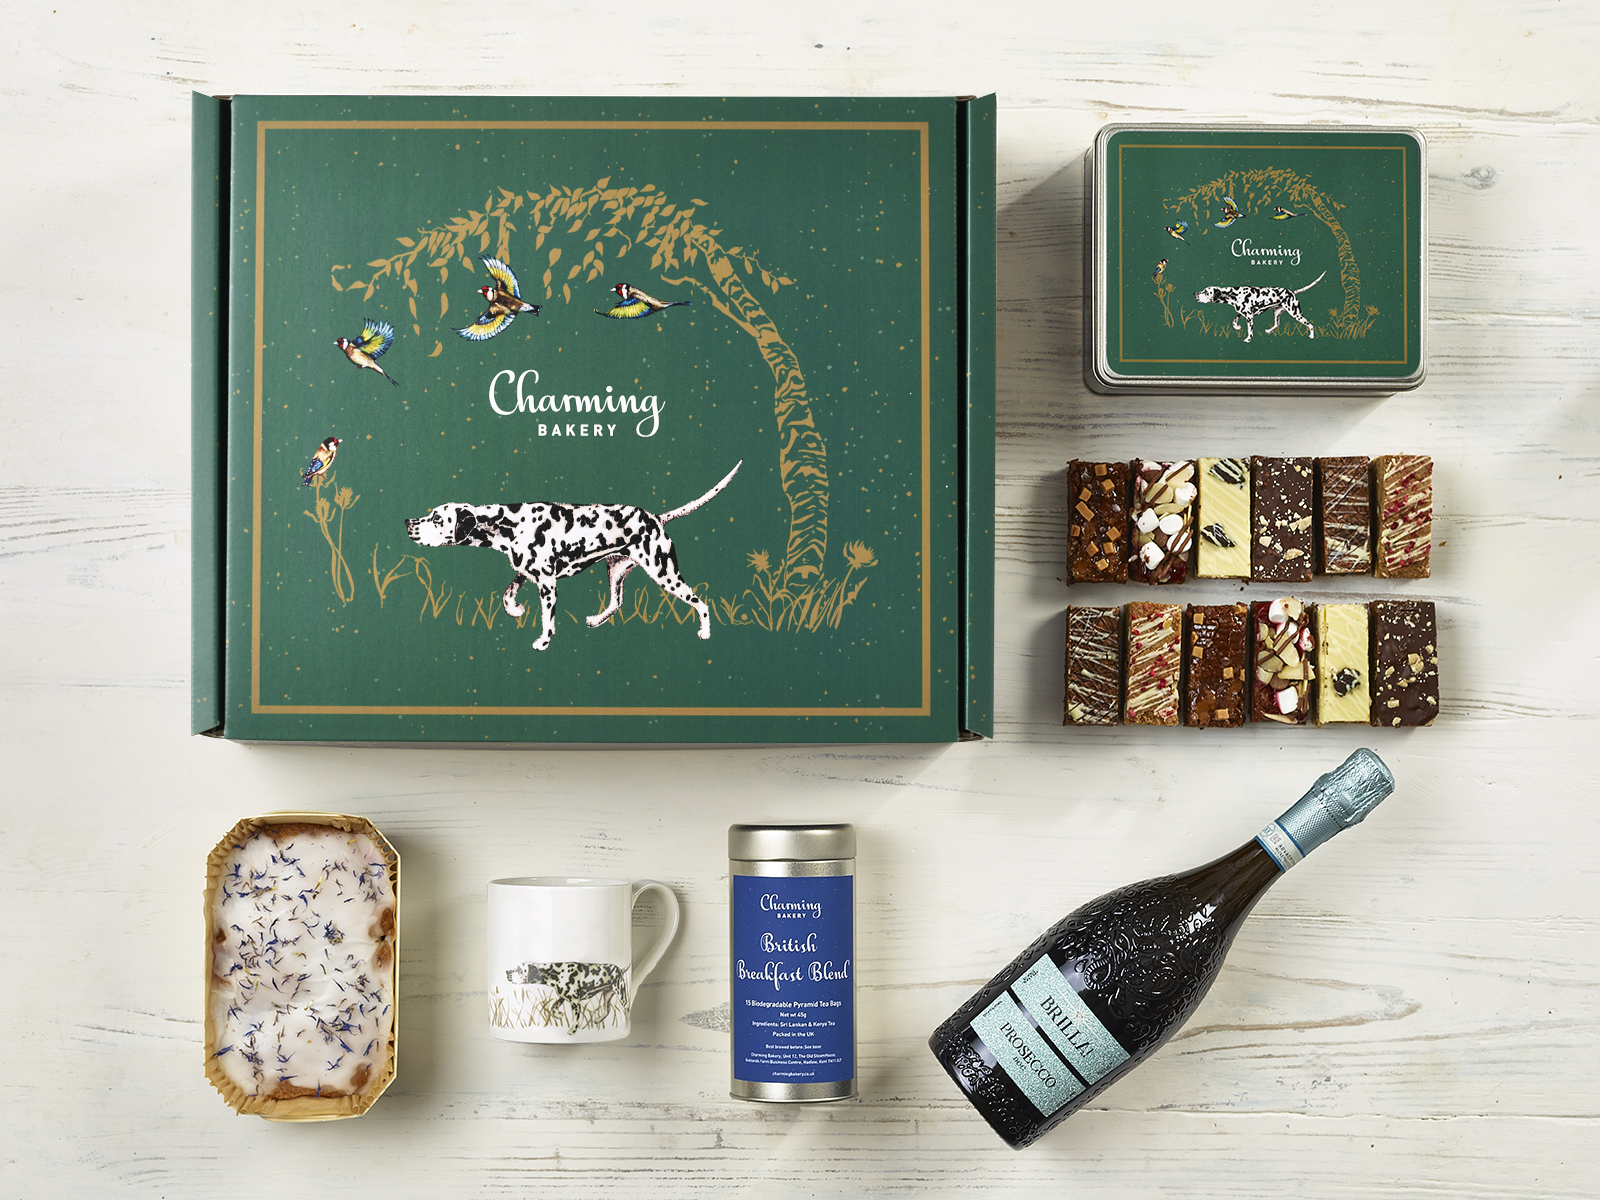 Luxury Prosecco Afternoon Tea Gift Hamper - Dalmatian Design - Charming Bakery